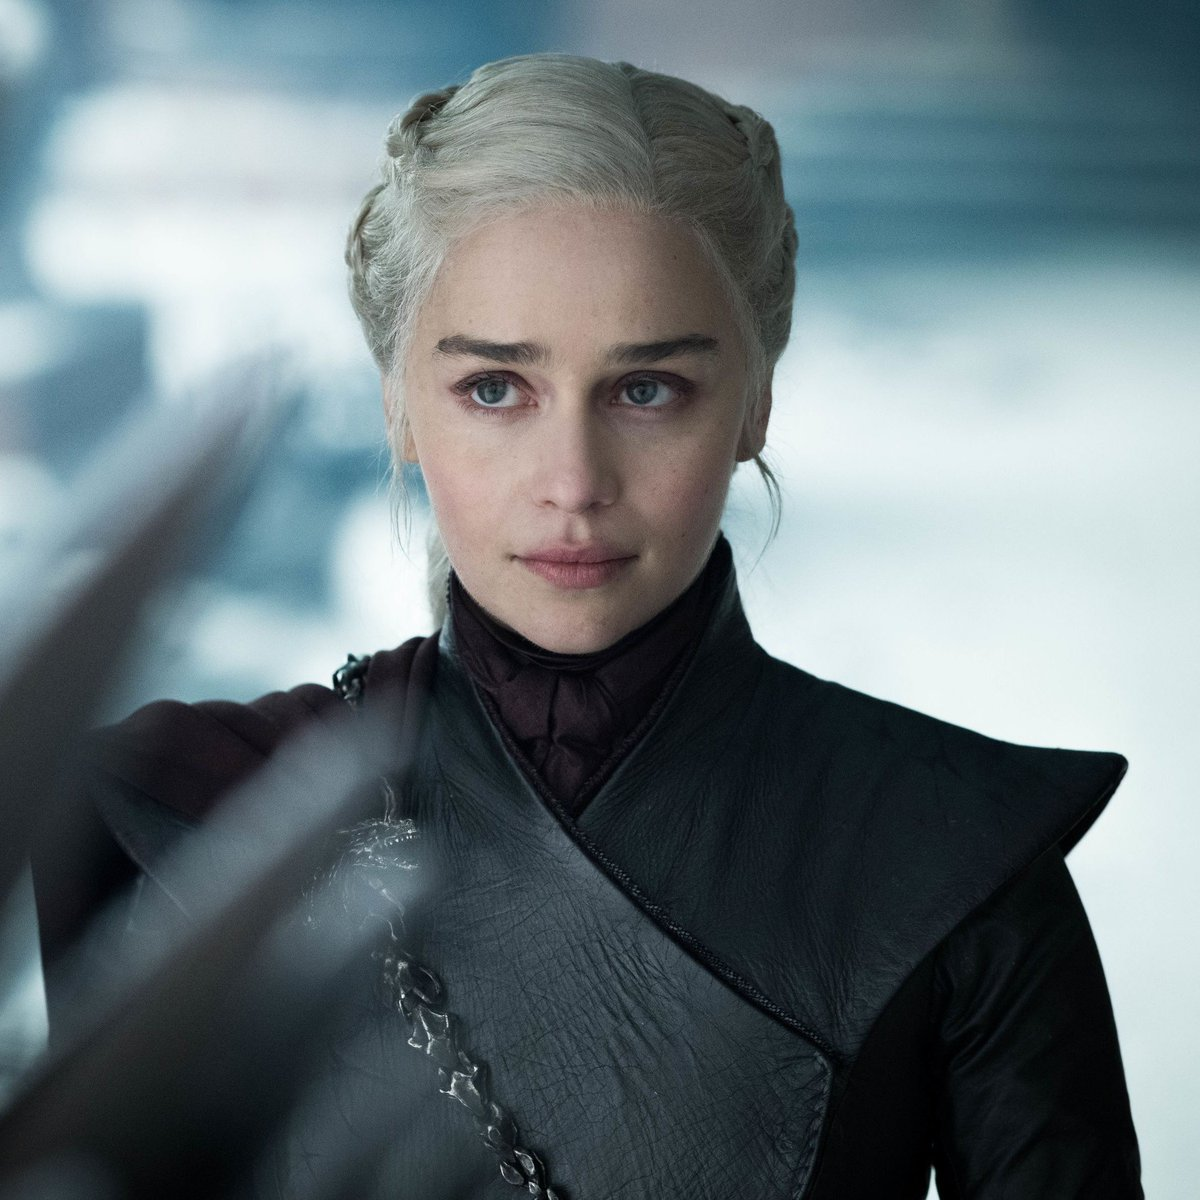 A 'Game of Thrones' prequel pilot based on House Targaryen & set 300 years before the events of the main show is reportedly in the works at HBO   (via @DEADLINE |  http:// bit.ly/2lSUQdD    )<br>http://pic.twitter.com/6jJjooVCyt